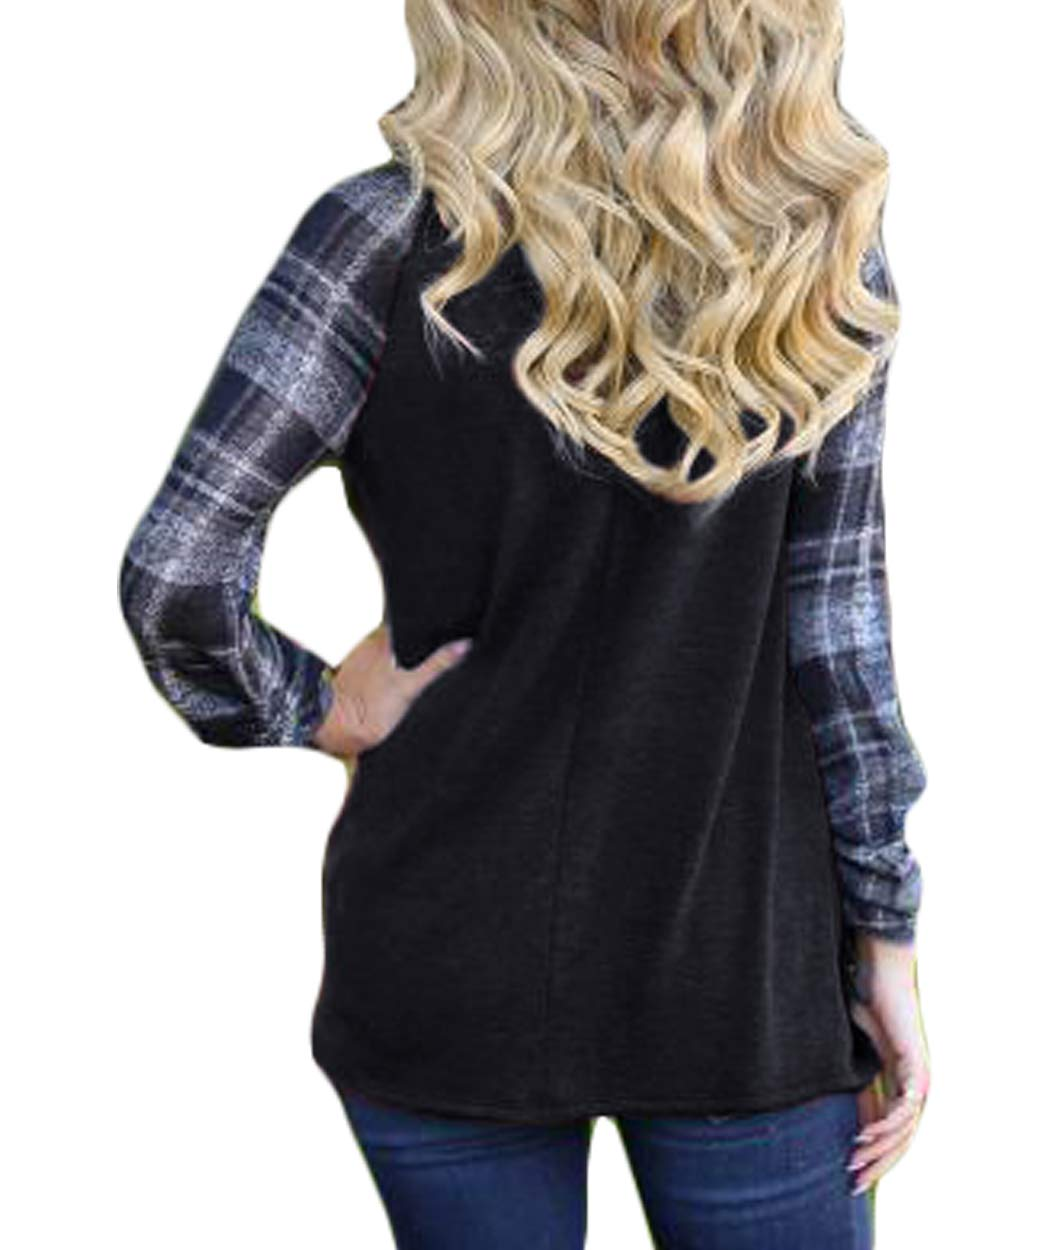 Eanklosco Women Long Sleeve Tops Plaid Patchwork Shirt Casual Round Neck Color Block Tunic Blouse (S, Black)